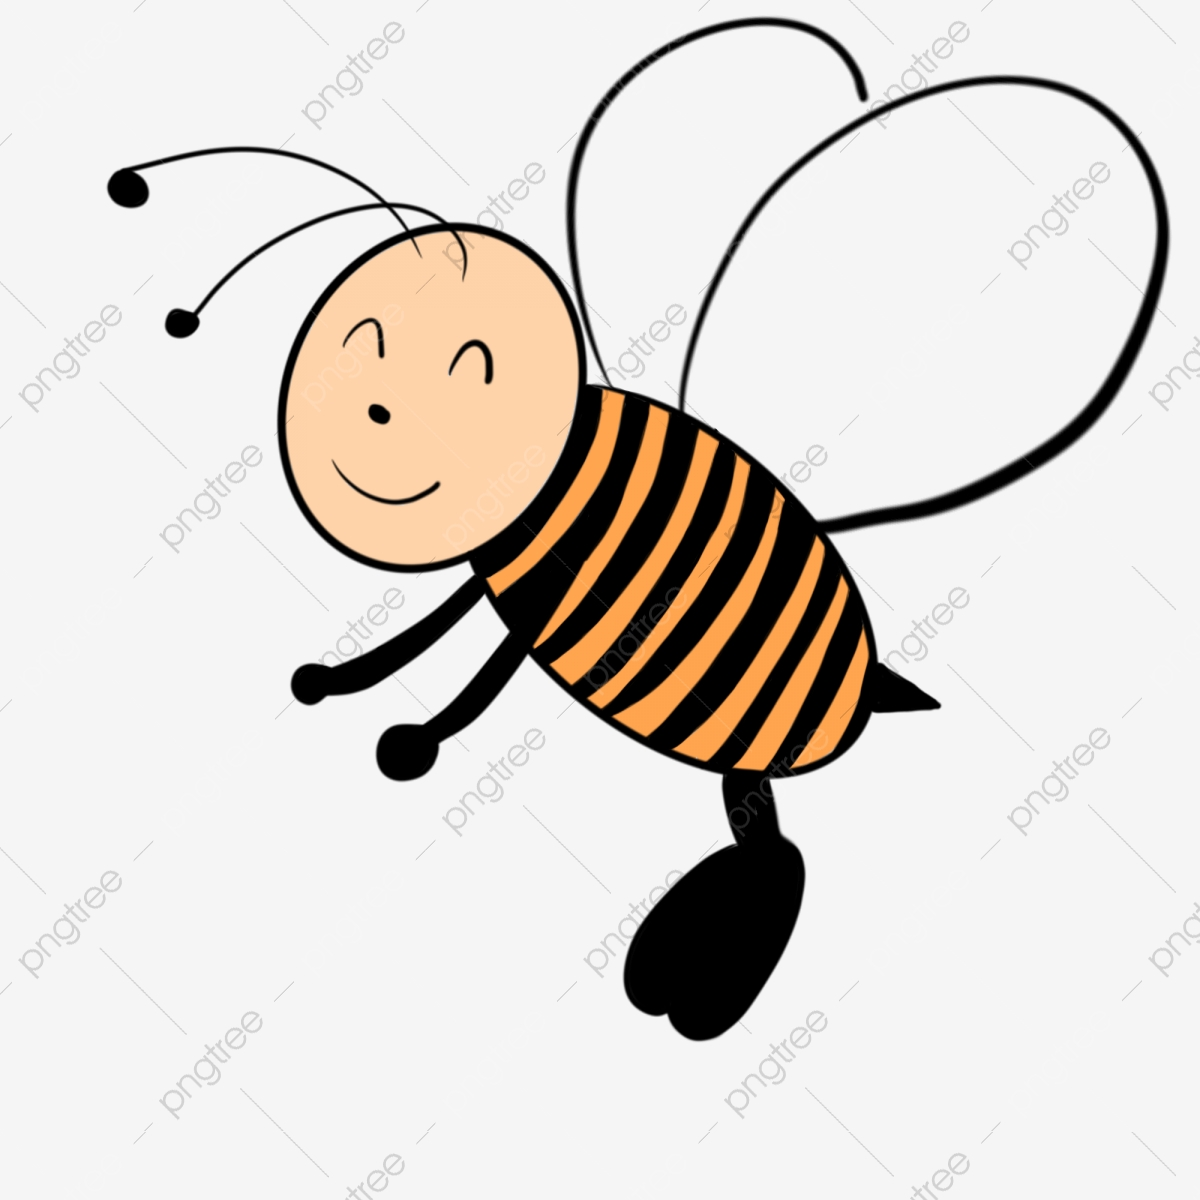 Broken bee wing clipart clipart images gallery for free.